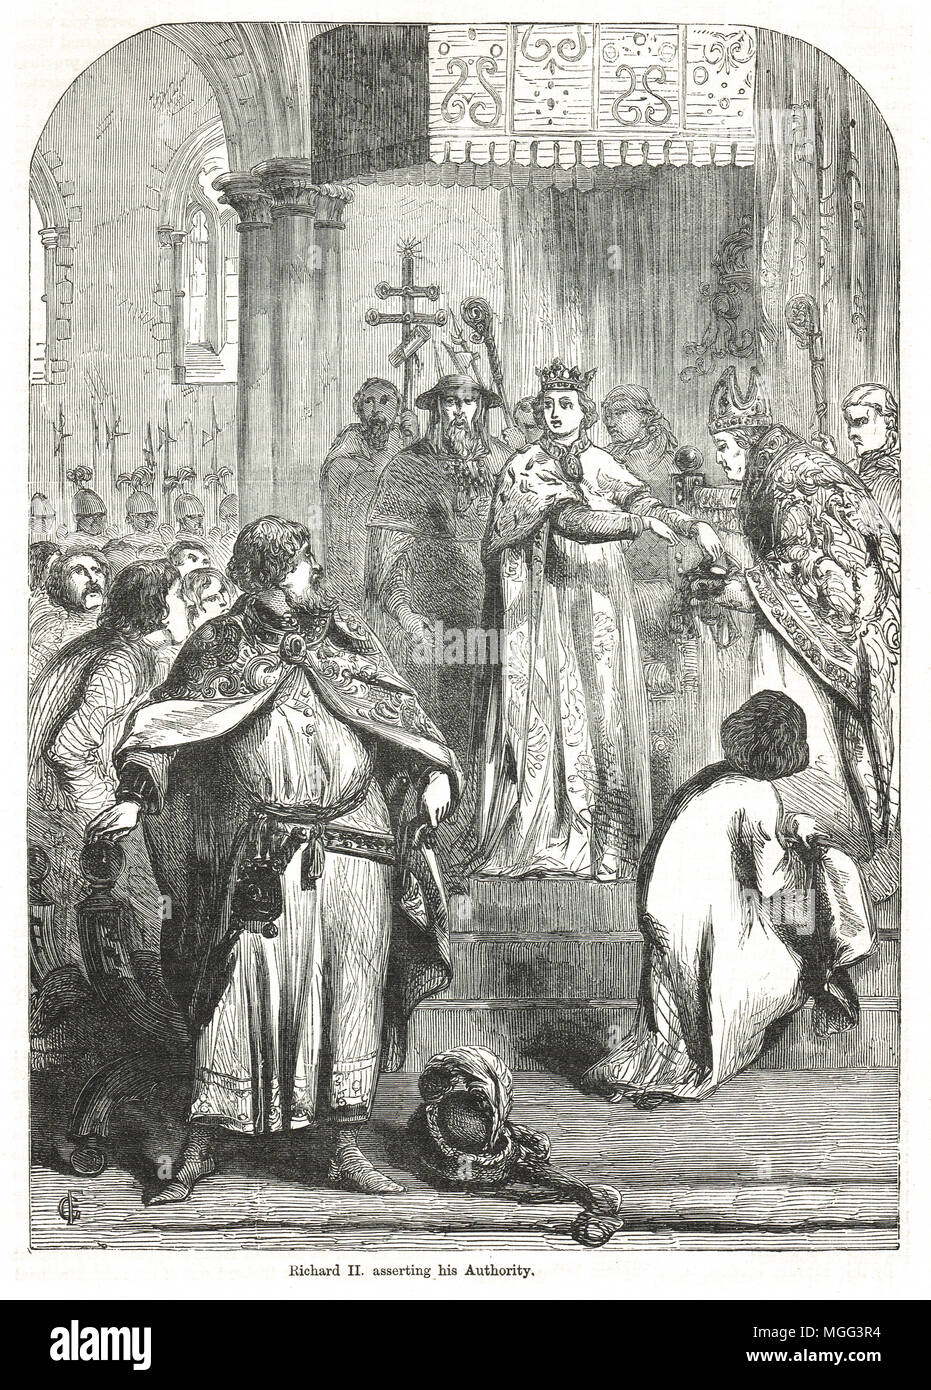 King Richard II of England, asserting his authority at the great council, May 1389, dismissing the Lords Appellant - Stock Image